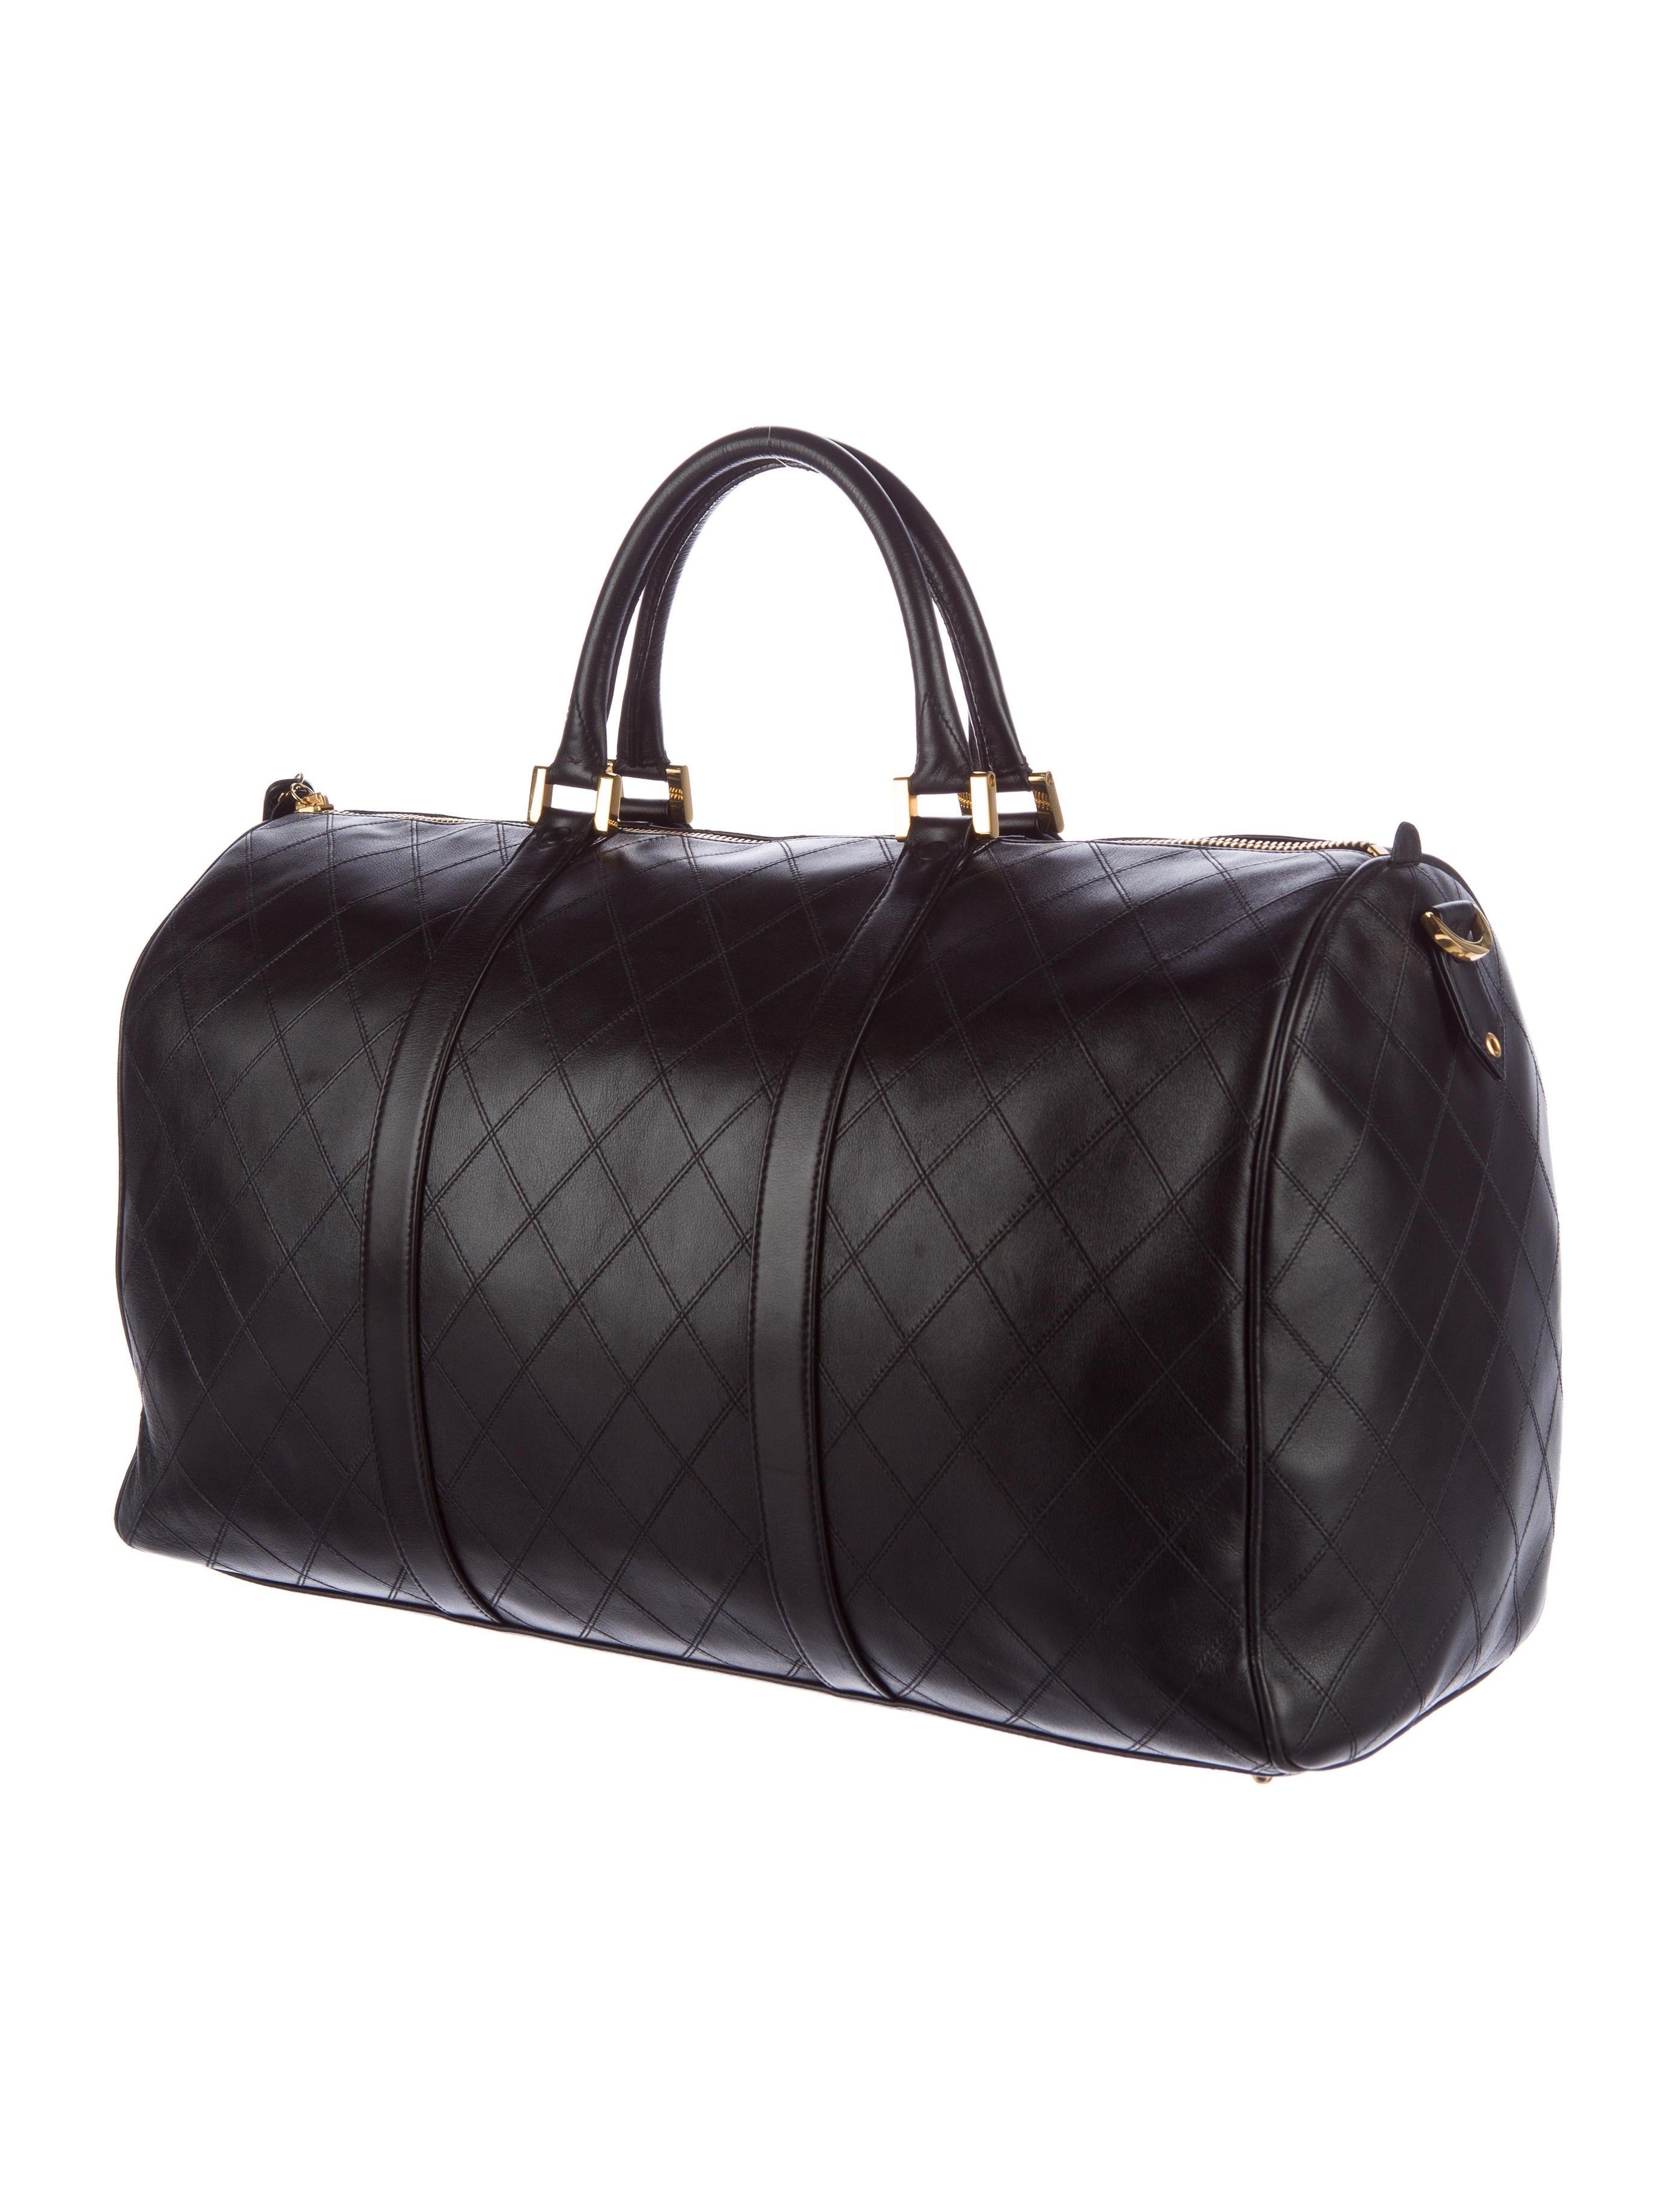 Chanel Quilted Duffle Bag - Handbags - CHA158720 | The RealReal : quilted duffle bags - Adamdwight.com